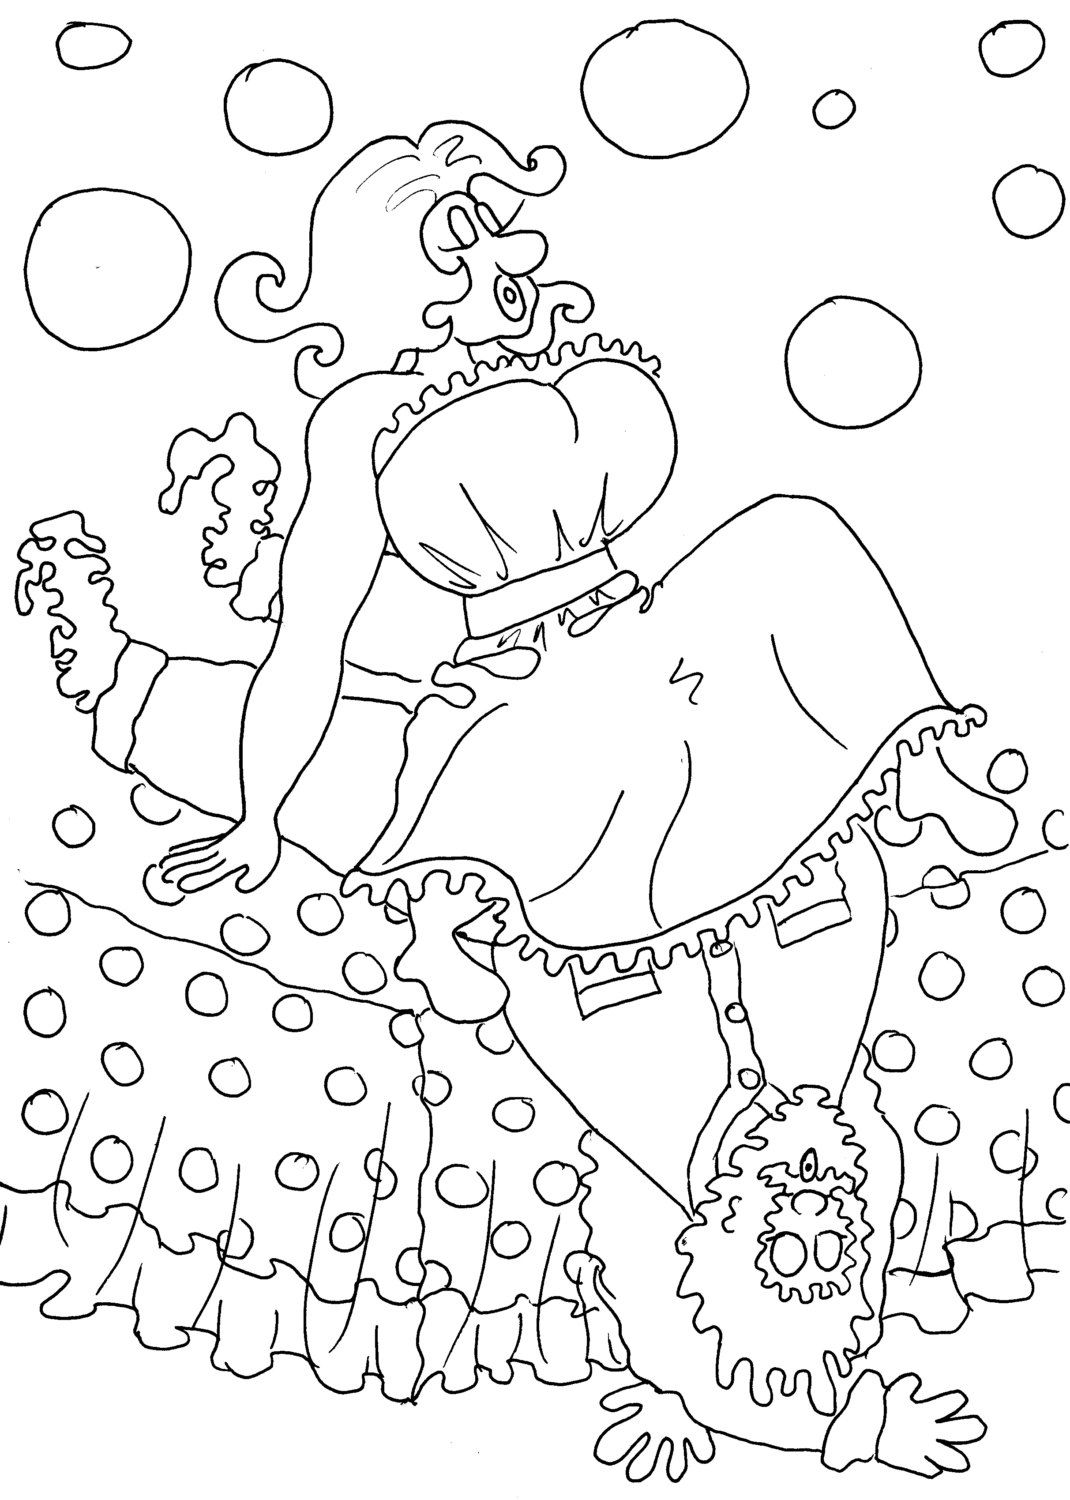 the supernova sexy coloring pages for adults from the chubby art cartoon colouring book for sex maniacs two 50 more kama sutra poses